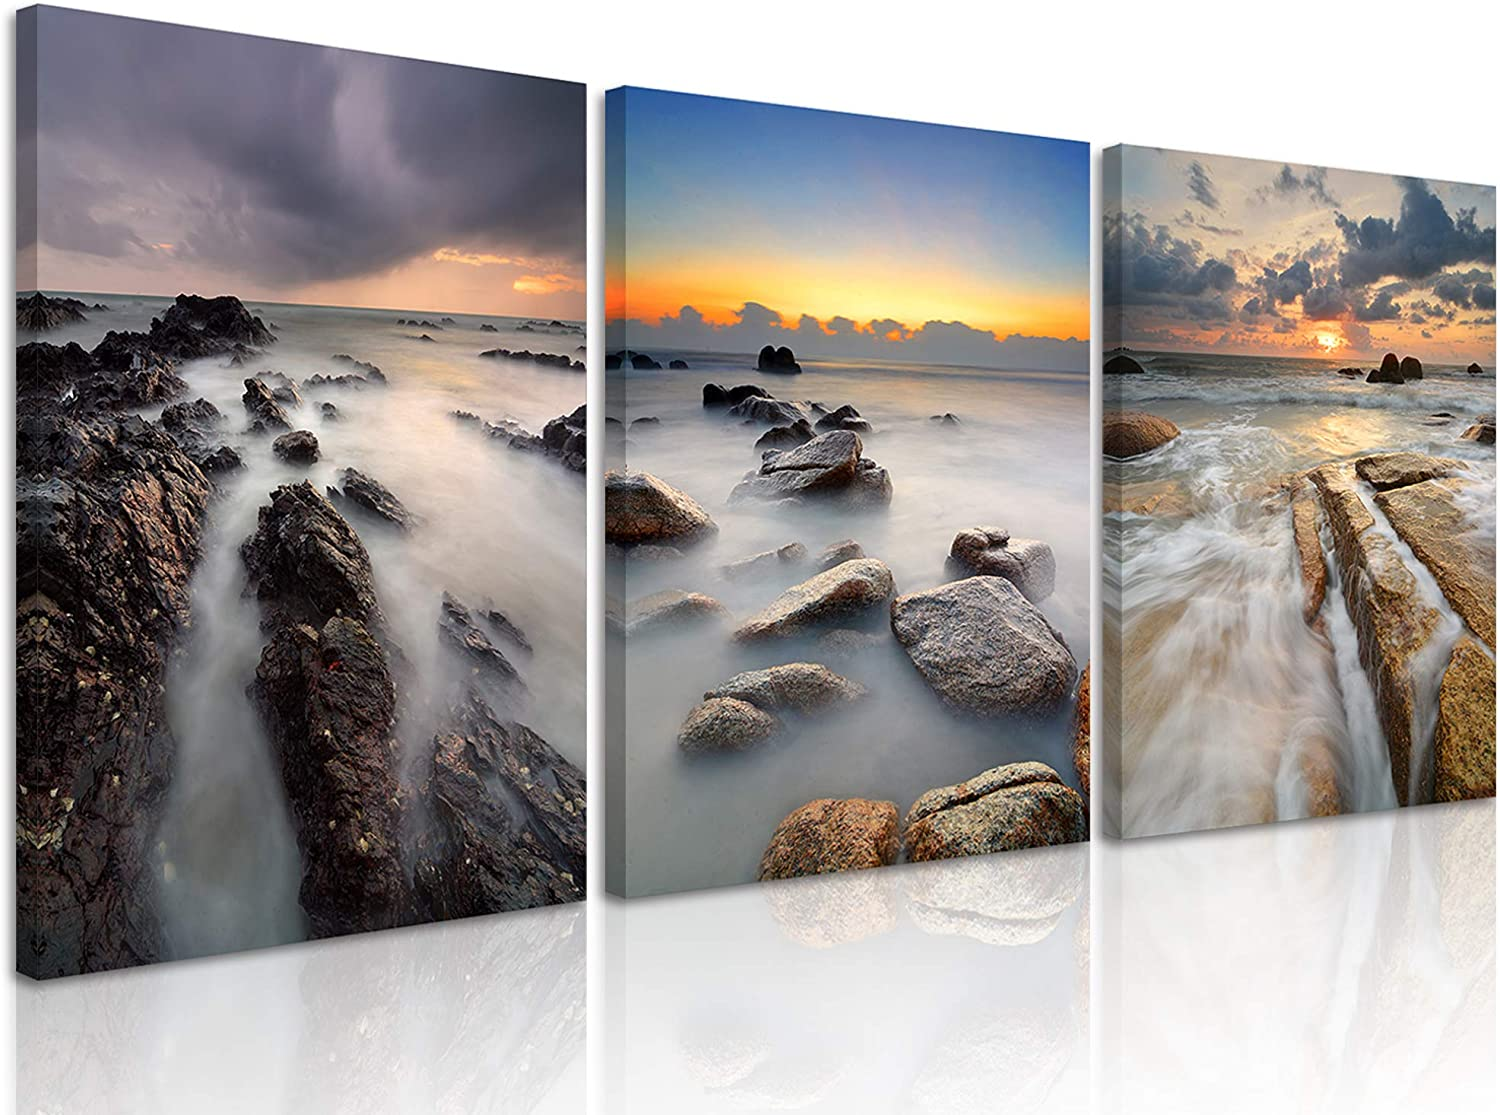 Natural art Canvas Wall Art Landscape Theme with Wooden Frame Rising Tide Paintings Ready to Hang for Home Livingroom Bedroom 12 X 16 Inches x 3 Panels